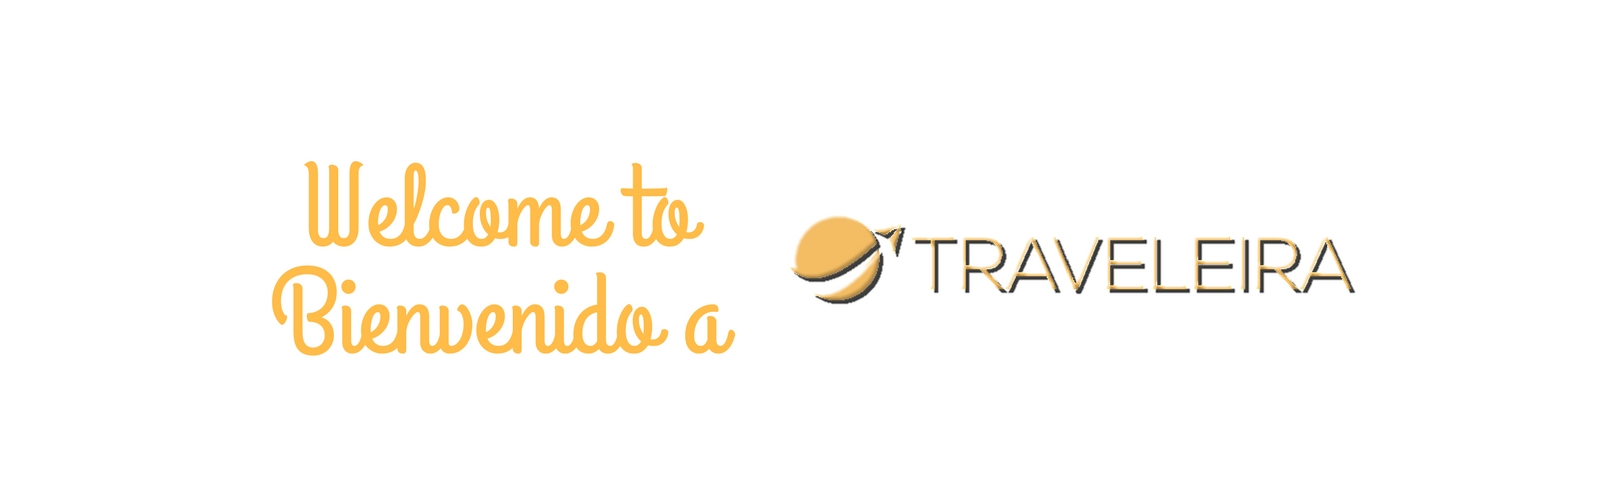 Traveleira.com, Tips for Inspiring Women to Travel